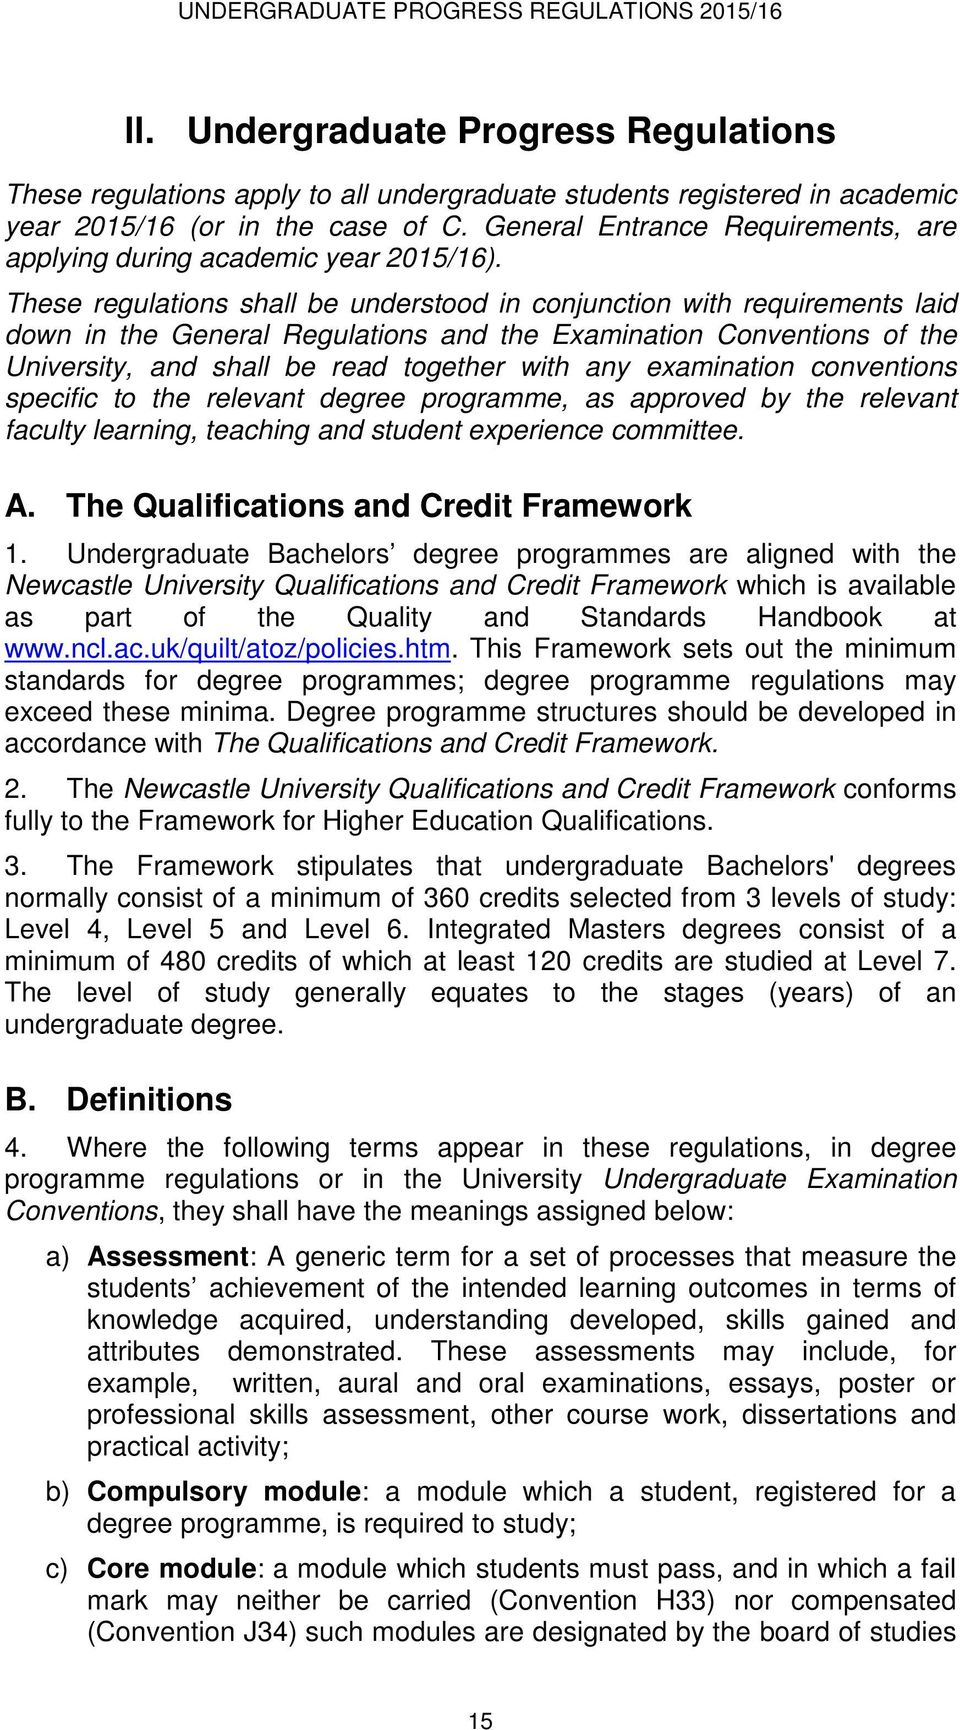 These regulations shall be understood in conjunction with requirements laid down in the General Regulations and the Examination Conventions of the University, and shall be read together with any